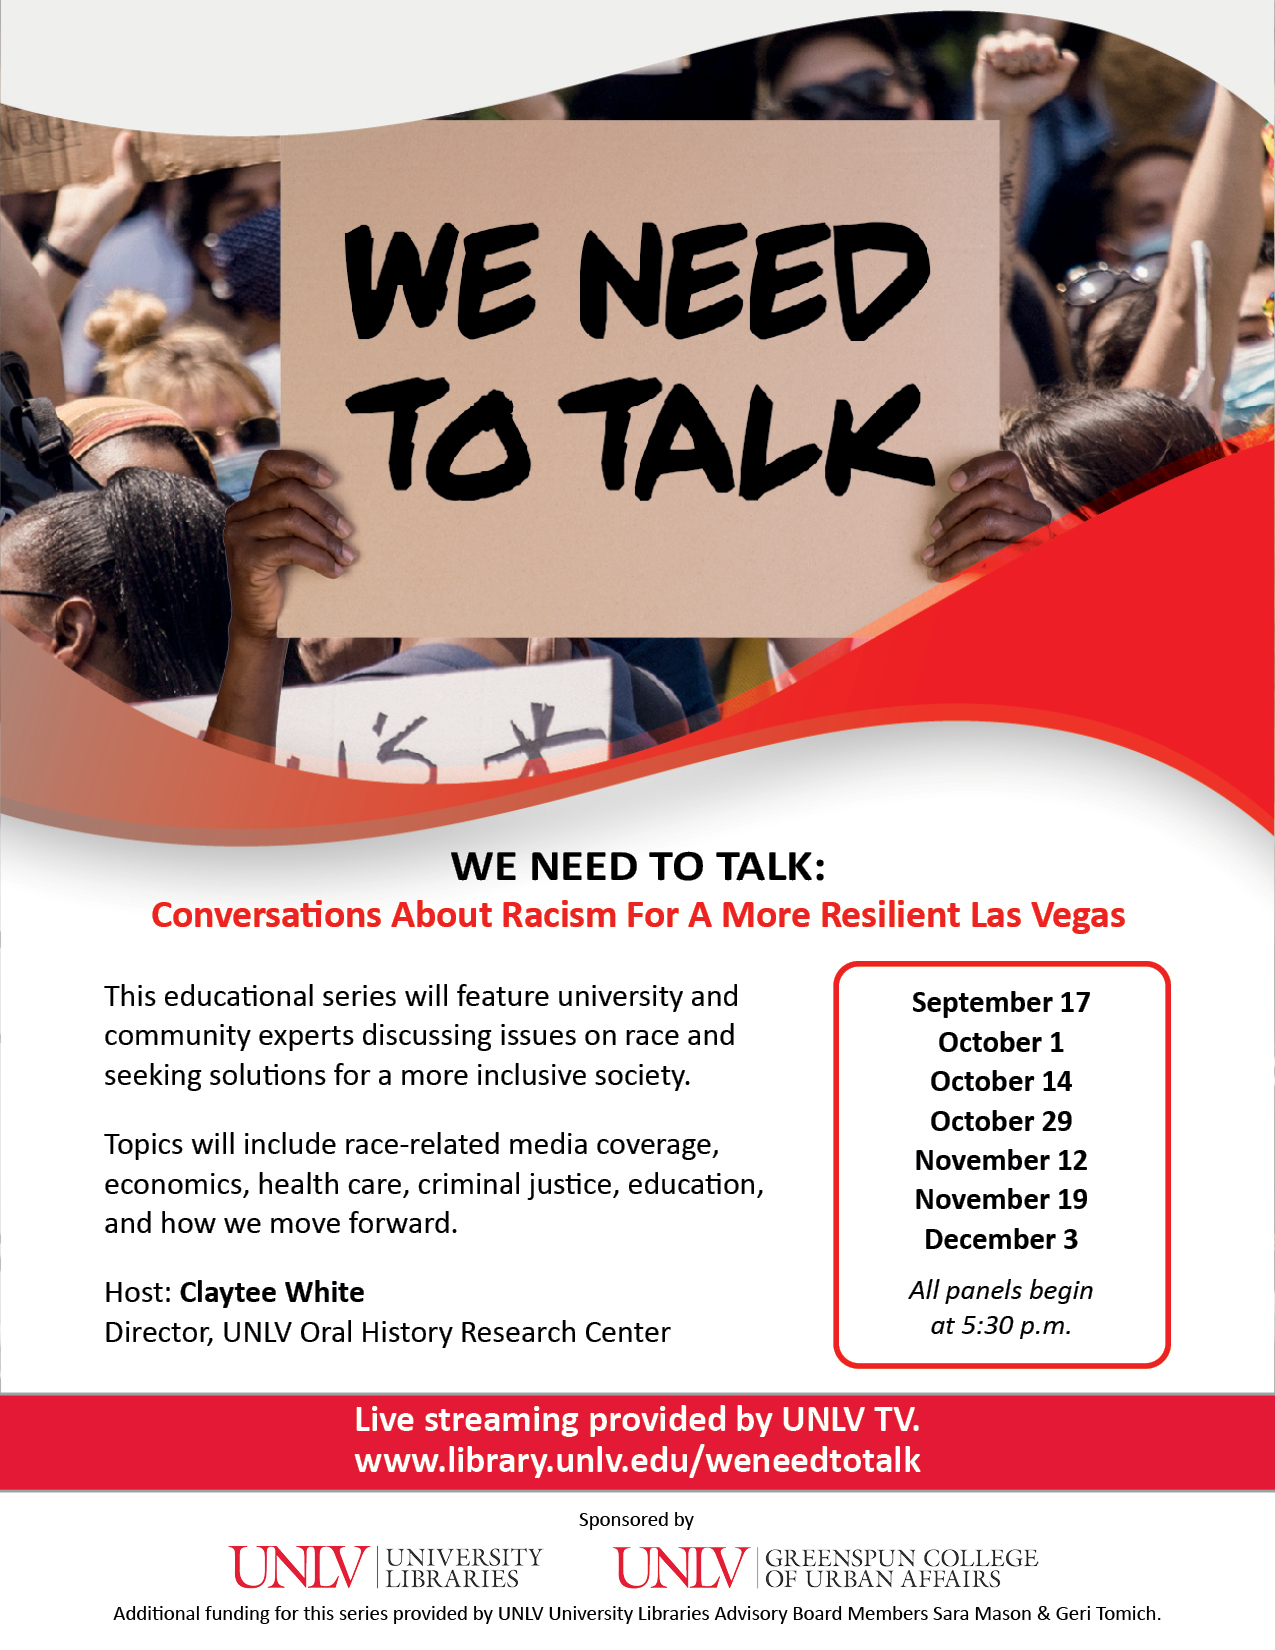 We Need To Talk About What's Next: Conversations About Racism For A More Resilient Las Vegas